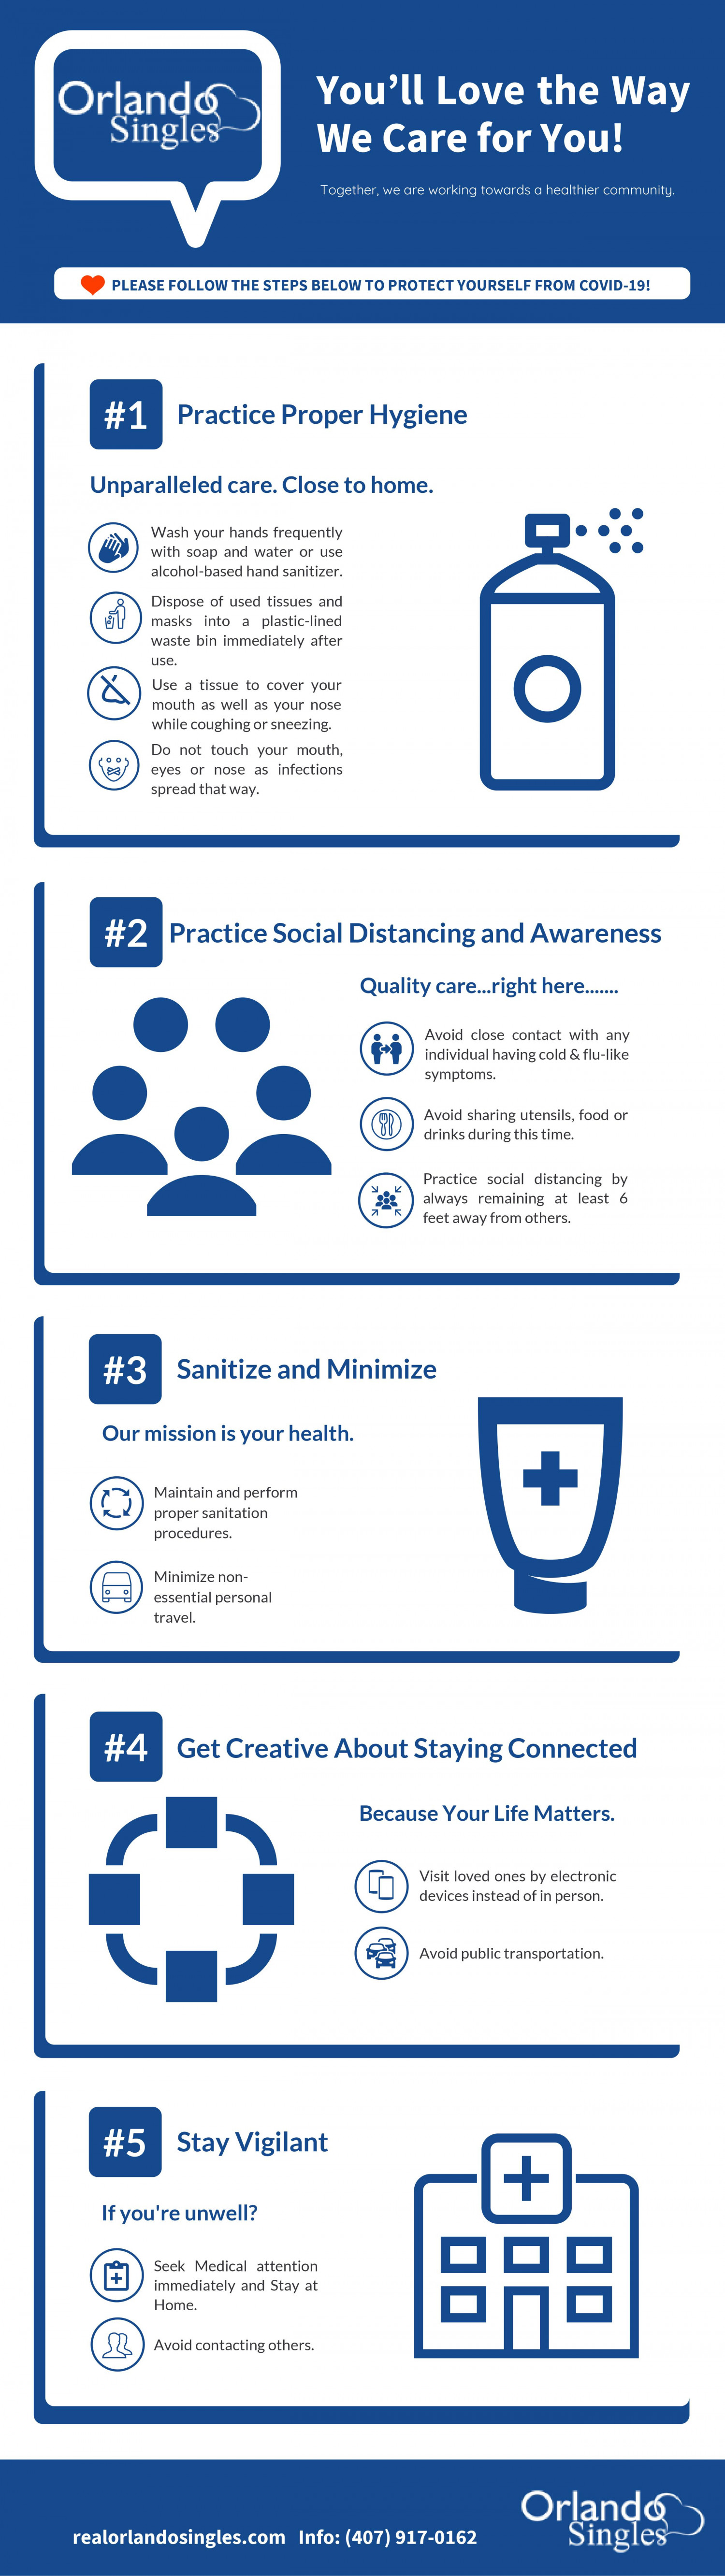 How to Take Care of Your Health During the COVID-19 Crisis? Infographic